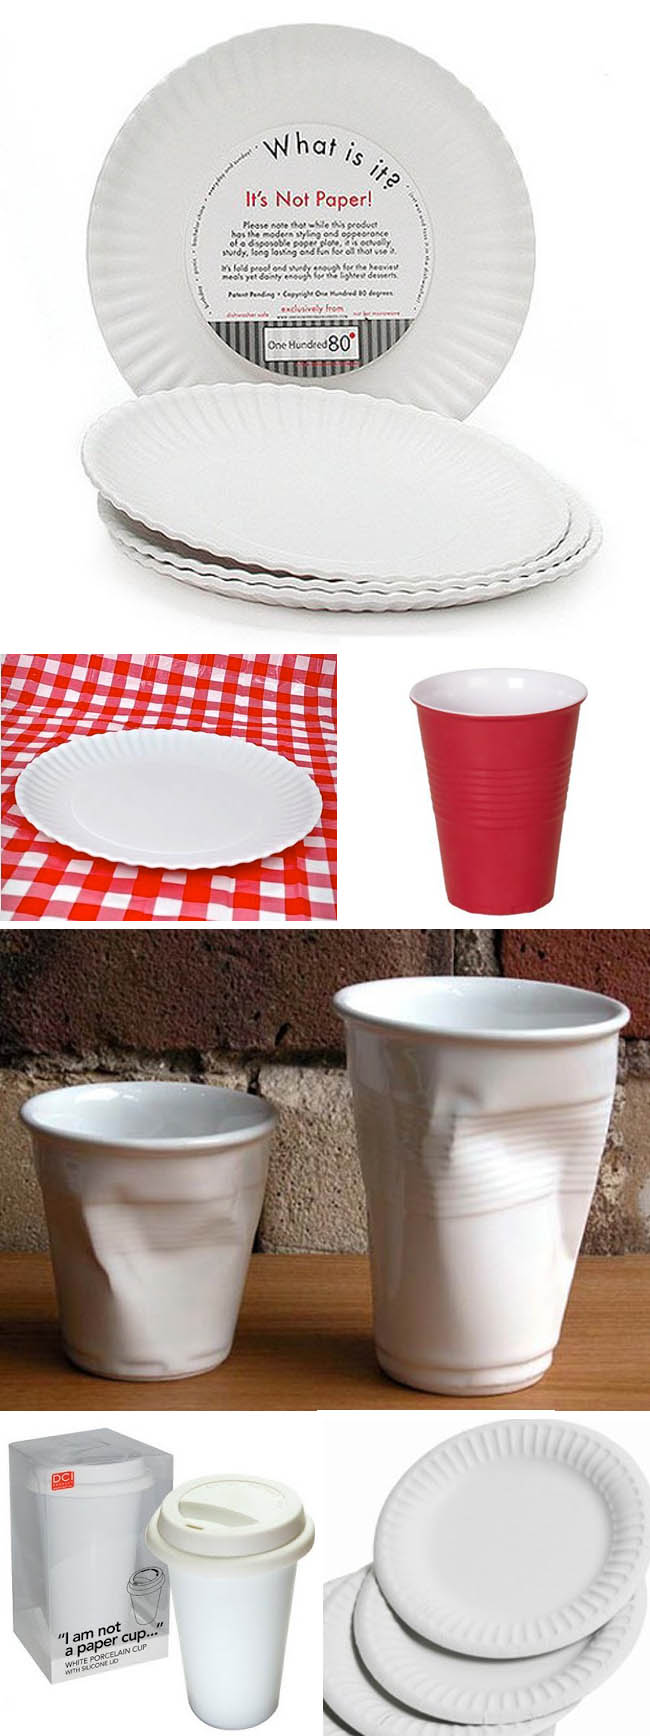 Paper Plates made in melamime, cool tableware, fun tableware, fun design, paper cups in porcelain, It's Not Paper!